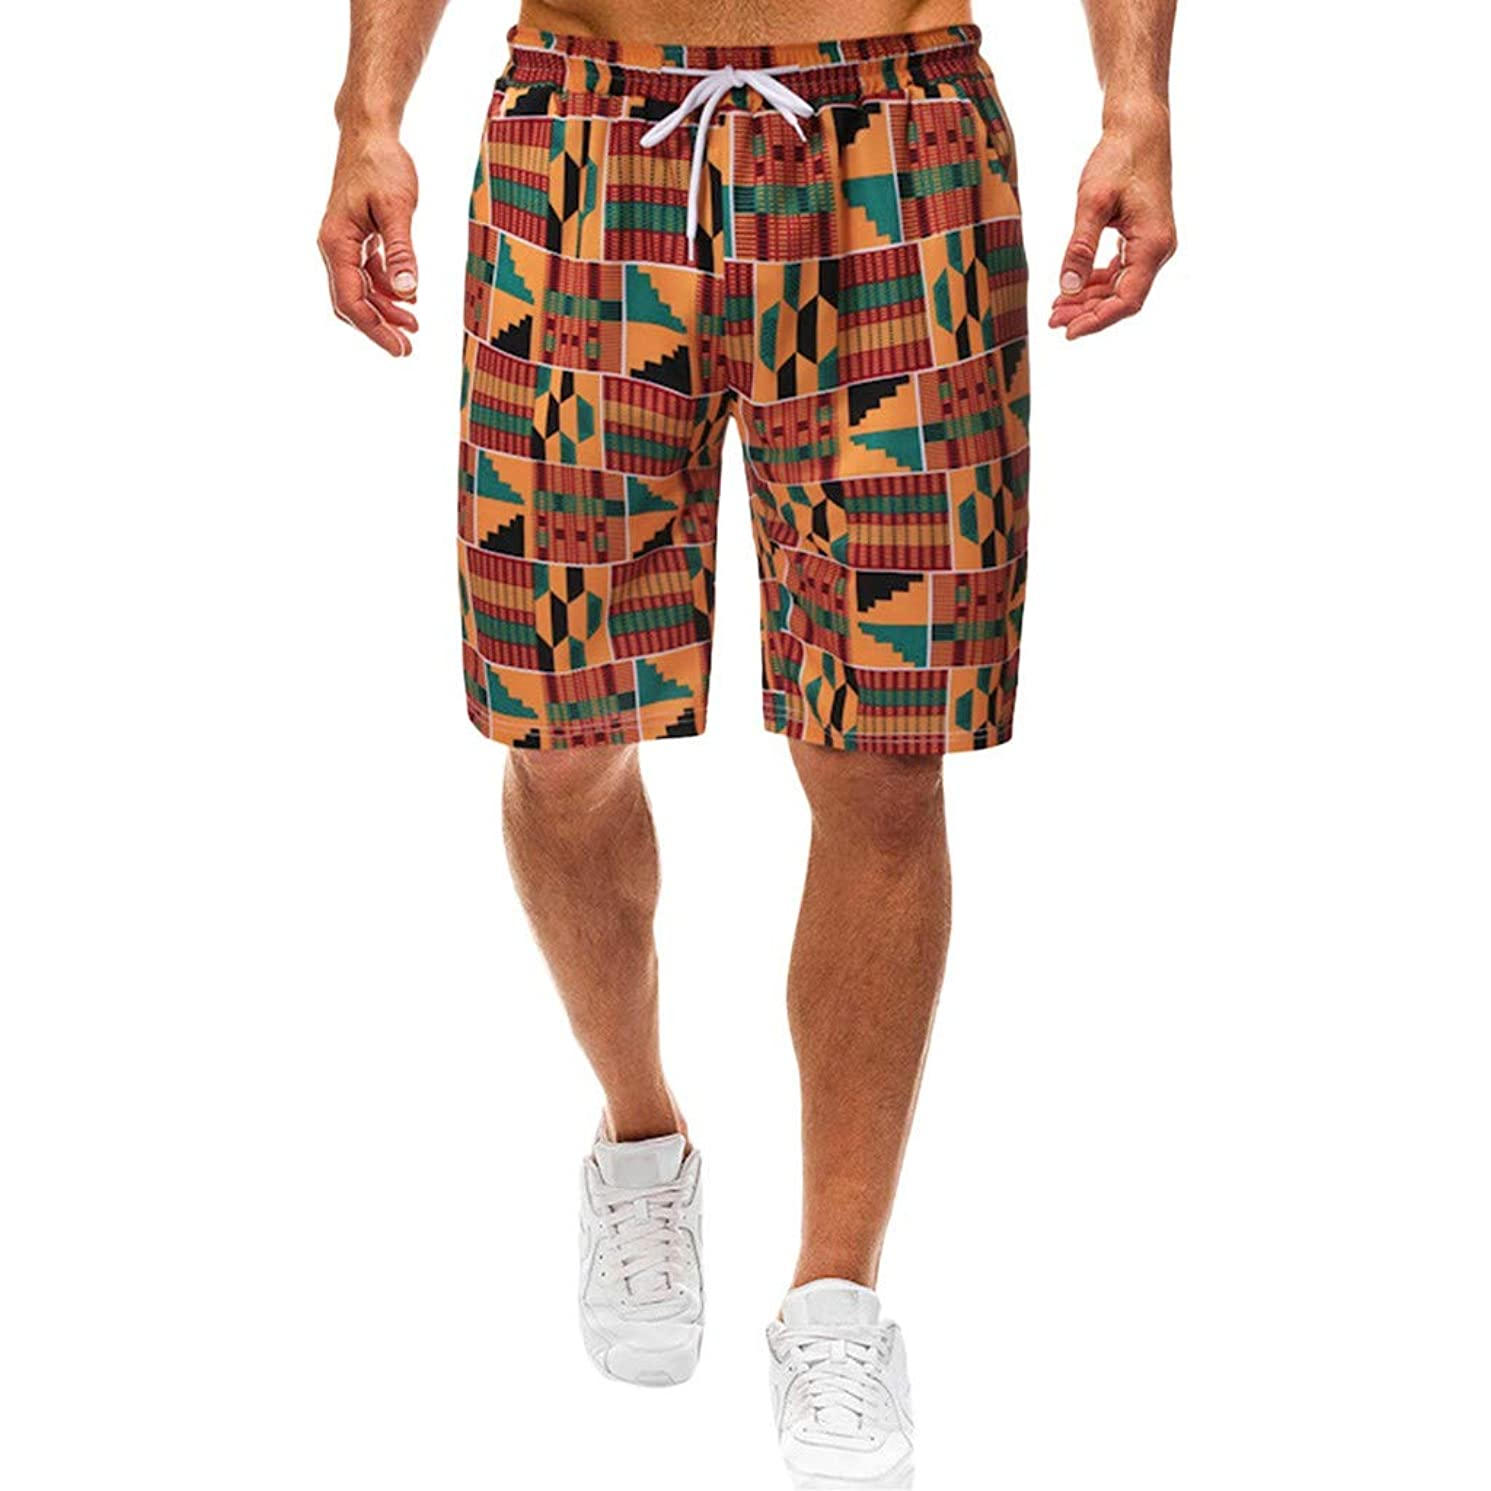 Featurestop Mens Shorts Casual Stretch Waist with Pocket Beach Sport Quick Dry Shorts Pants